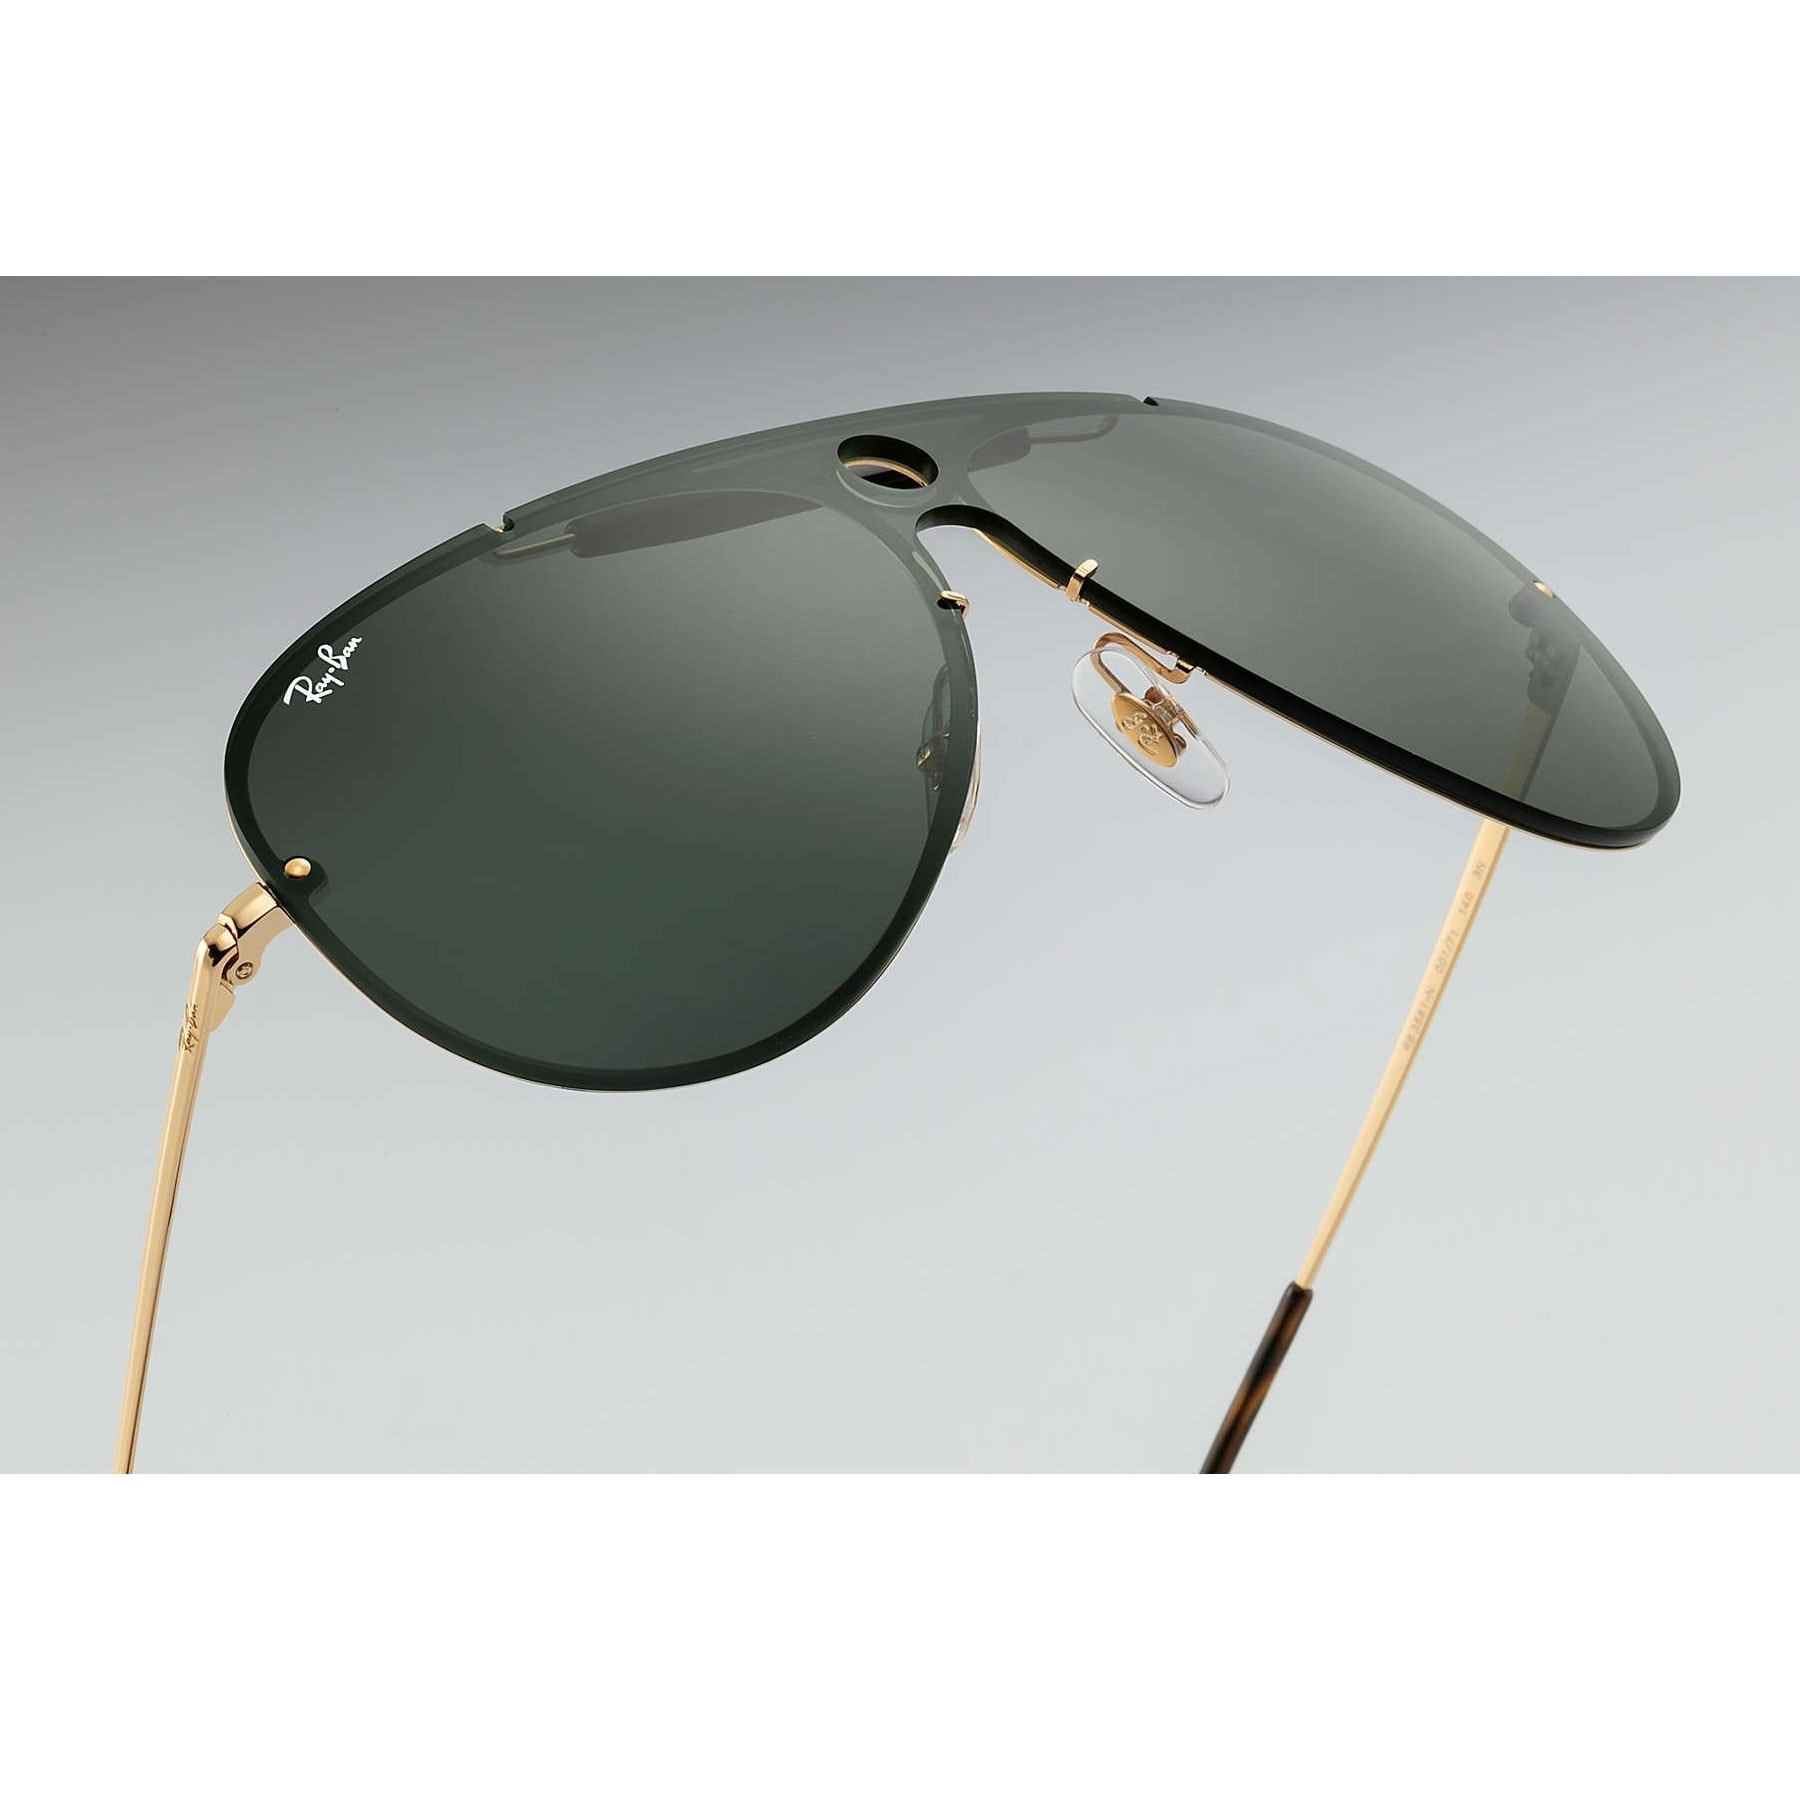 e3a5574bfef Shop Ray-Ban RB3581N Blaze Shooter Sunglasses Gold  Green Classic 32mm -  Black - Free Shipping Today - Overstock - 20457186